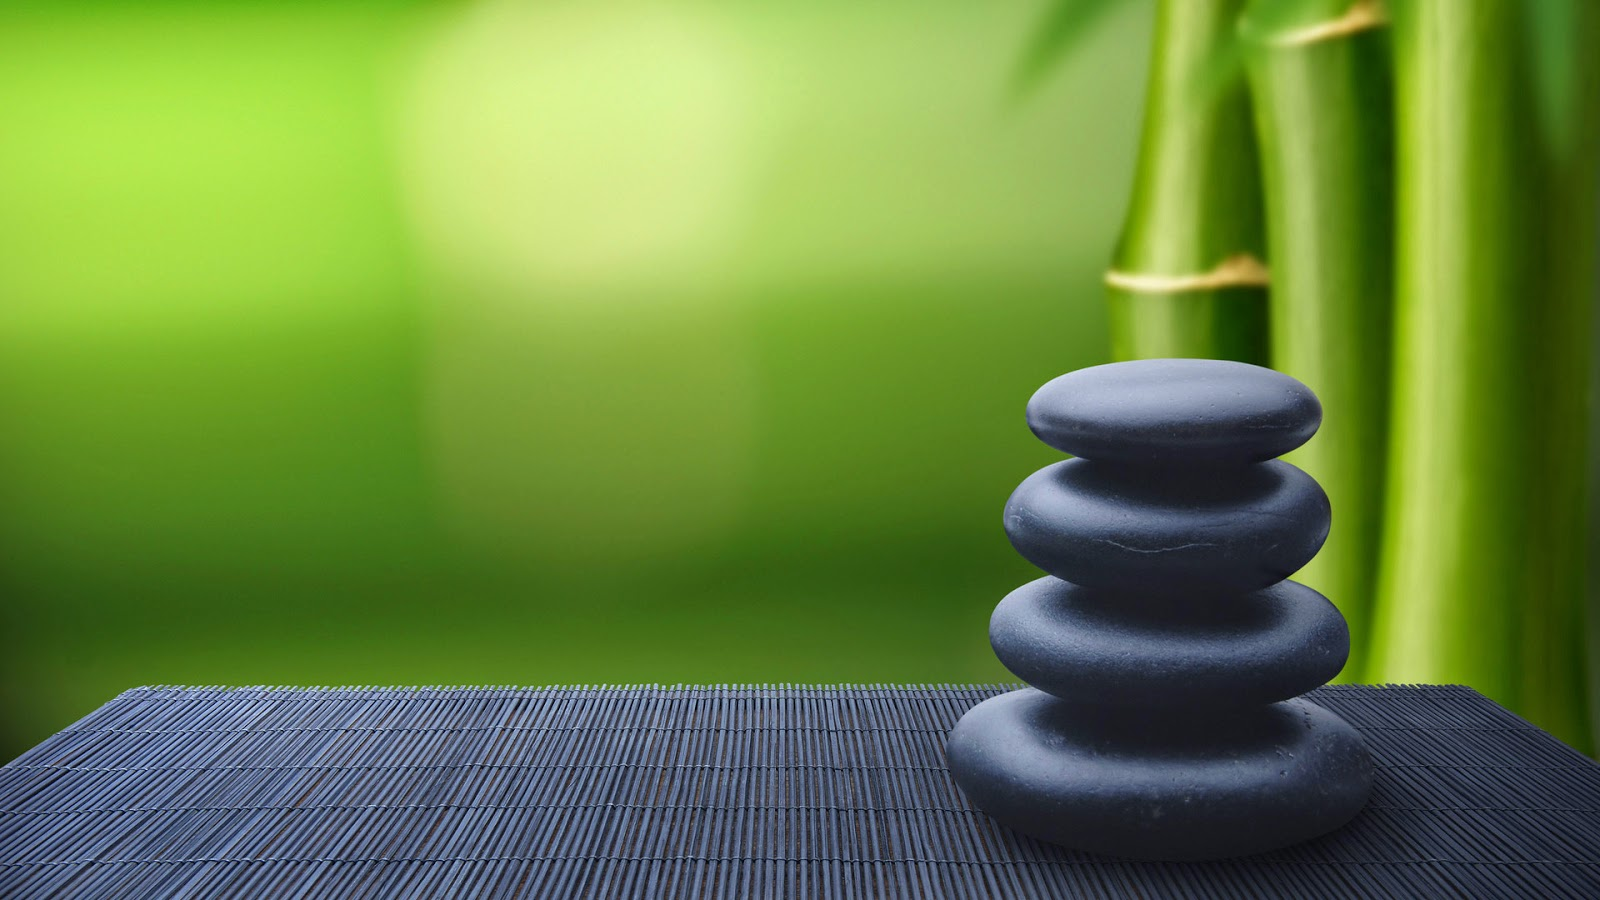 Zen-Bamboo-background-image-with-black-pebble-stone-image.jpg